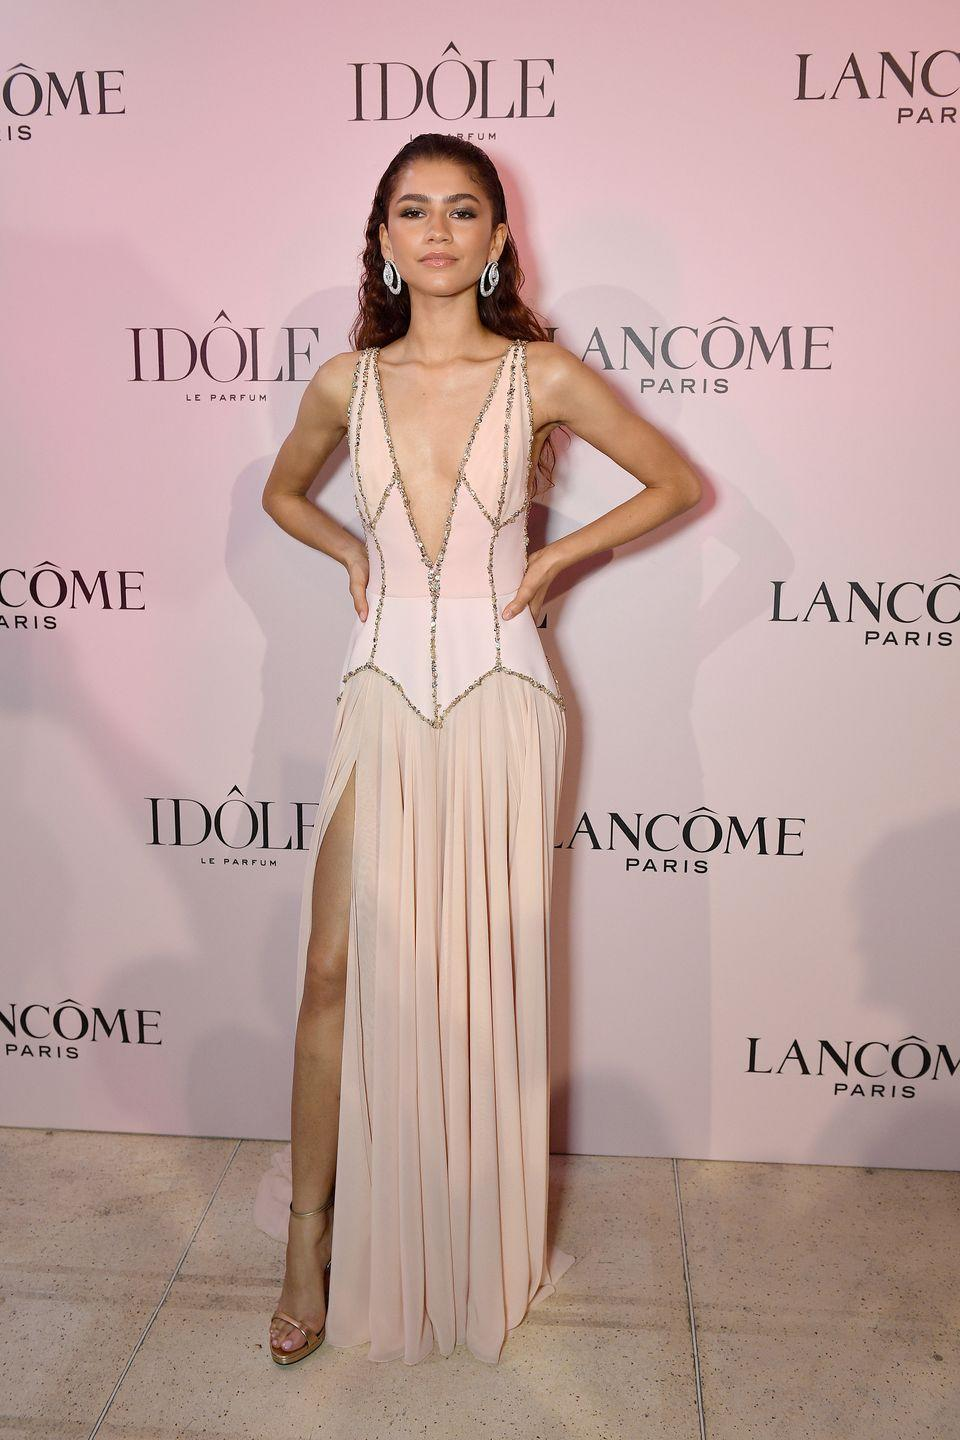 <p>When you're <em>the</em> face of a brand, you've got to show up to their events dressed to the nines. She looked ethereal in this pink gown for Lancôme's 'Idôle Fragrance' launch. The dress is by Georges Hobeika, and a pair of dazzling Chopard earrings really topped the look off.</p>